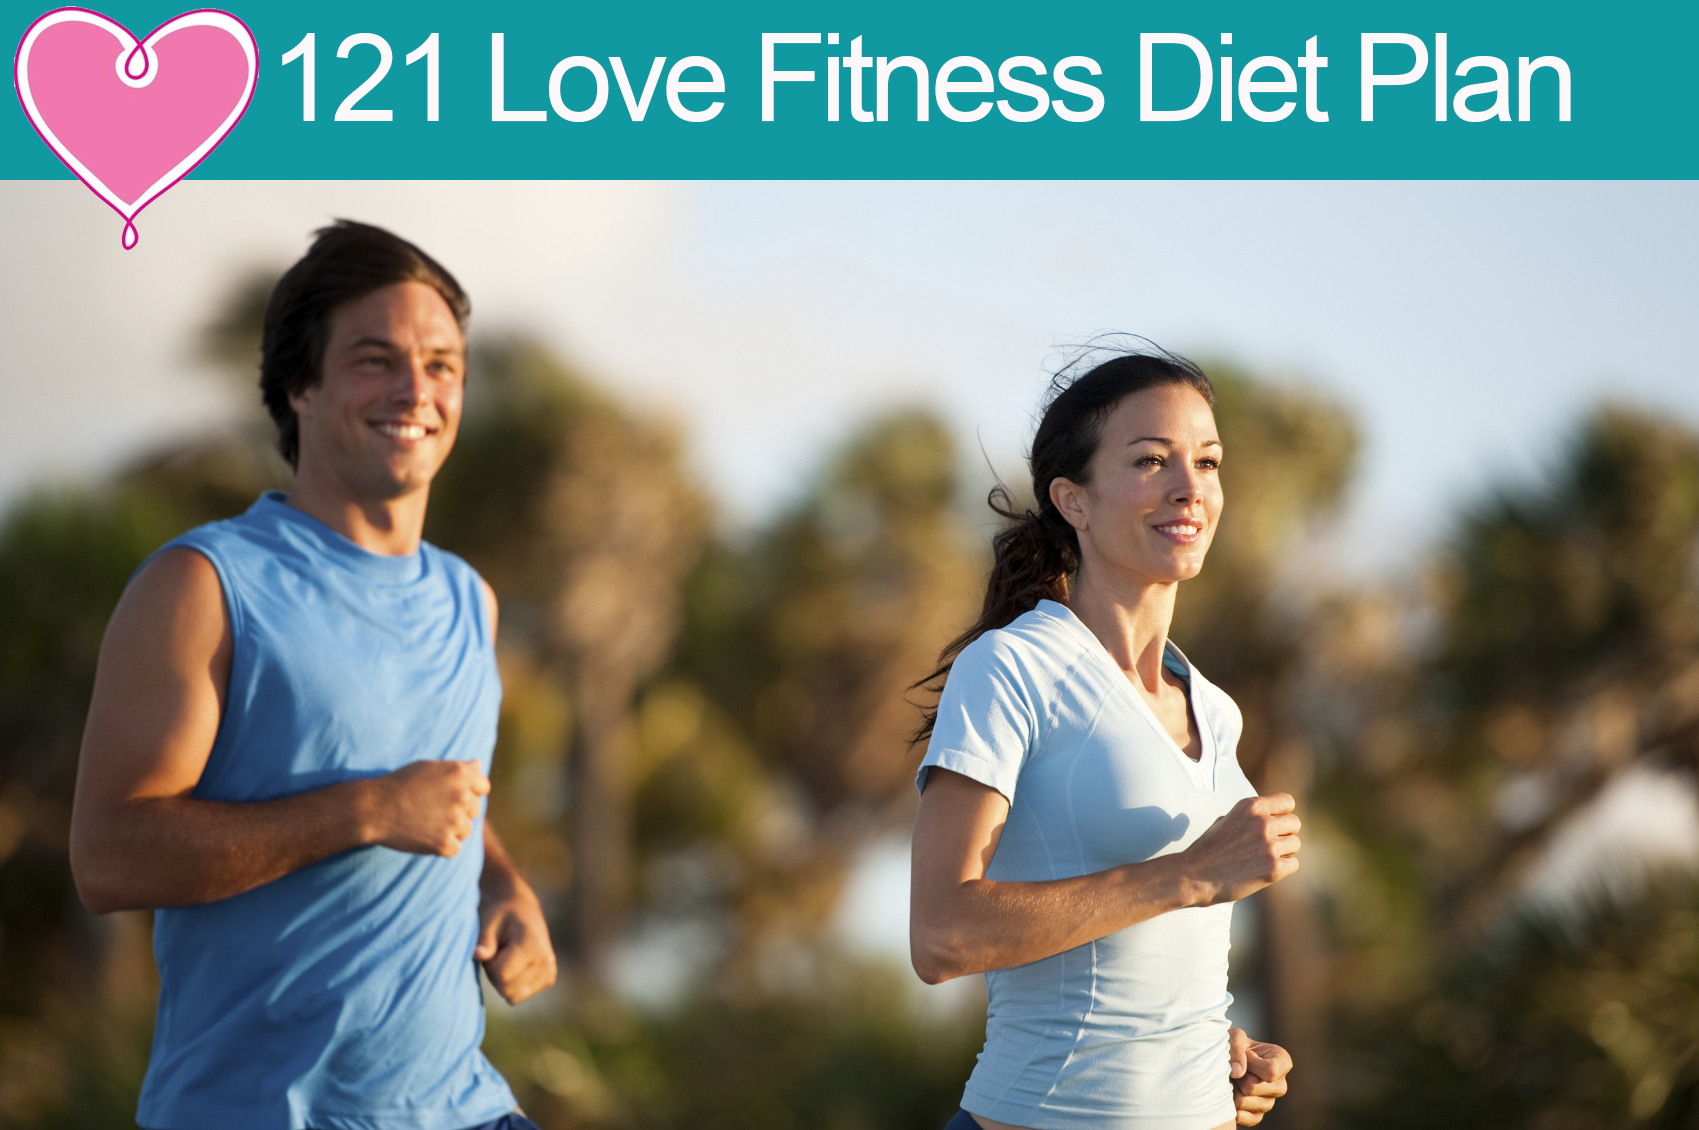 121 Love Fitness Diet Plan